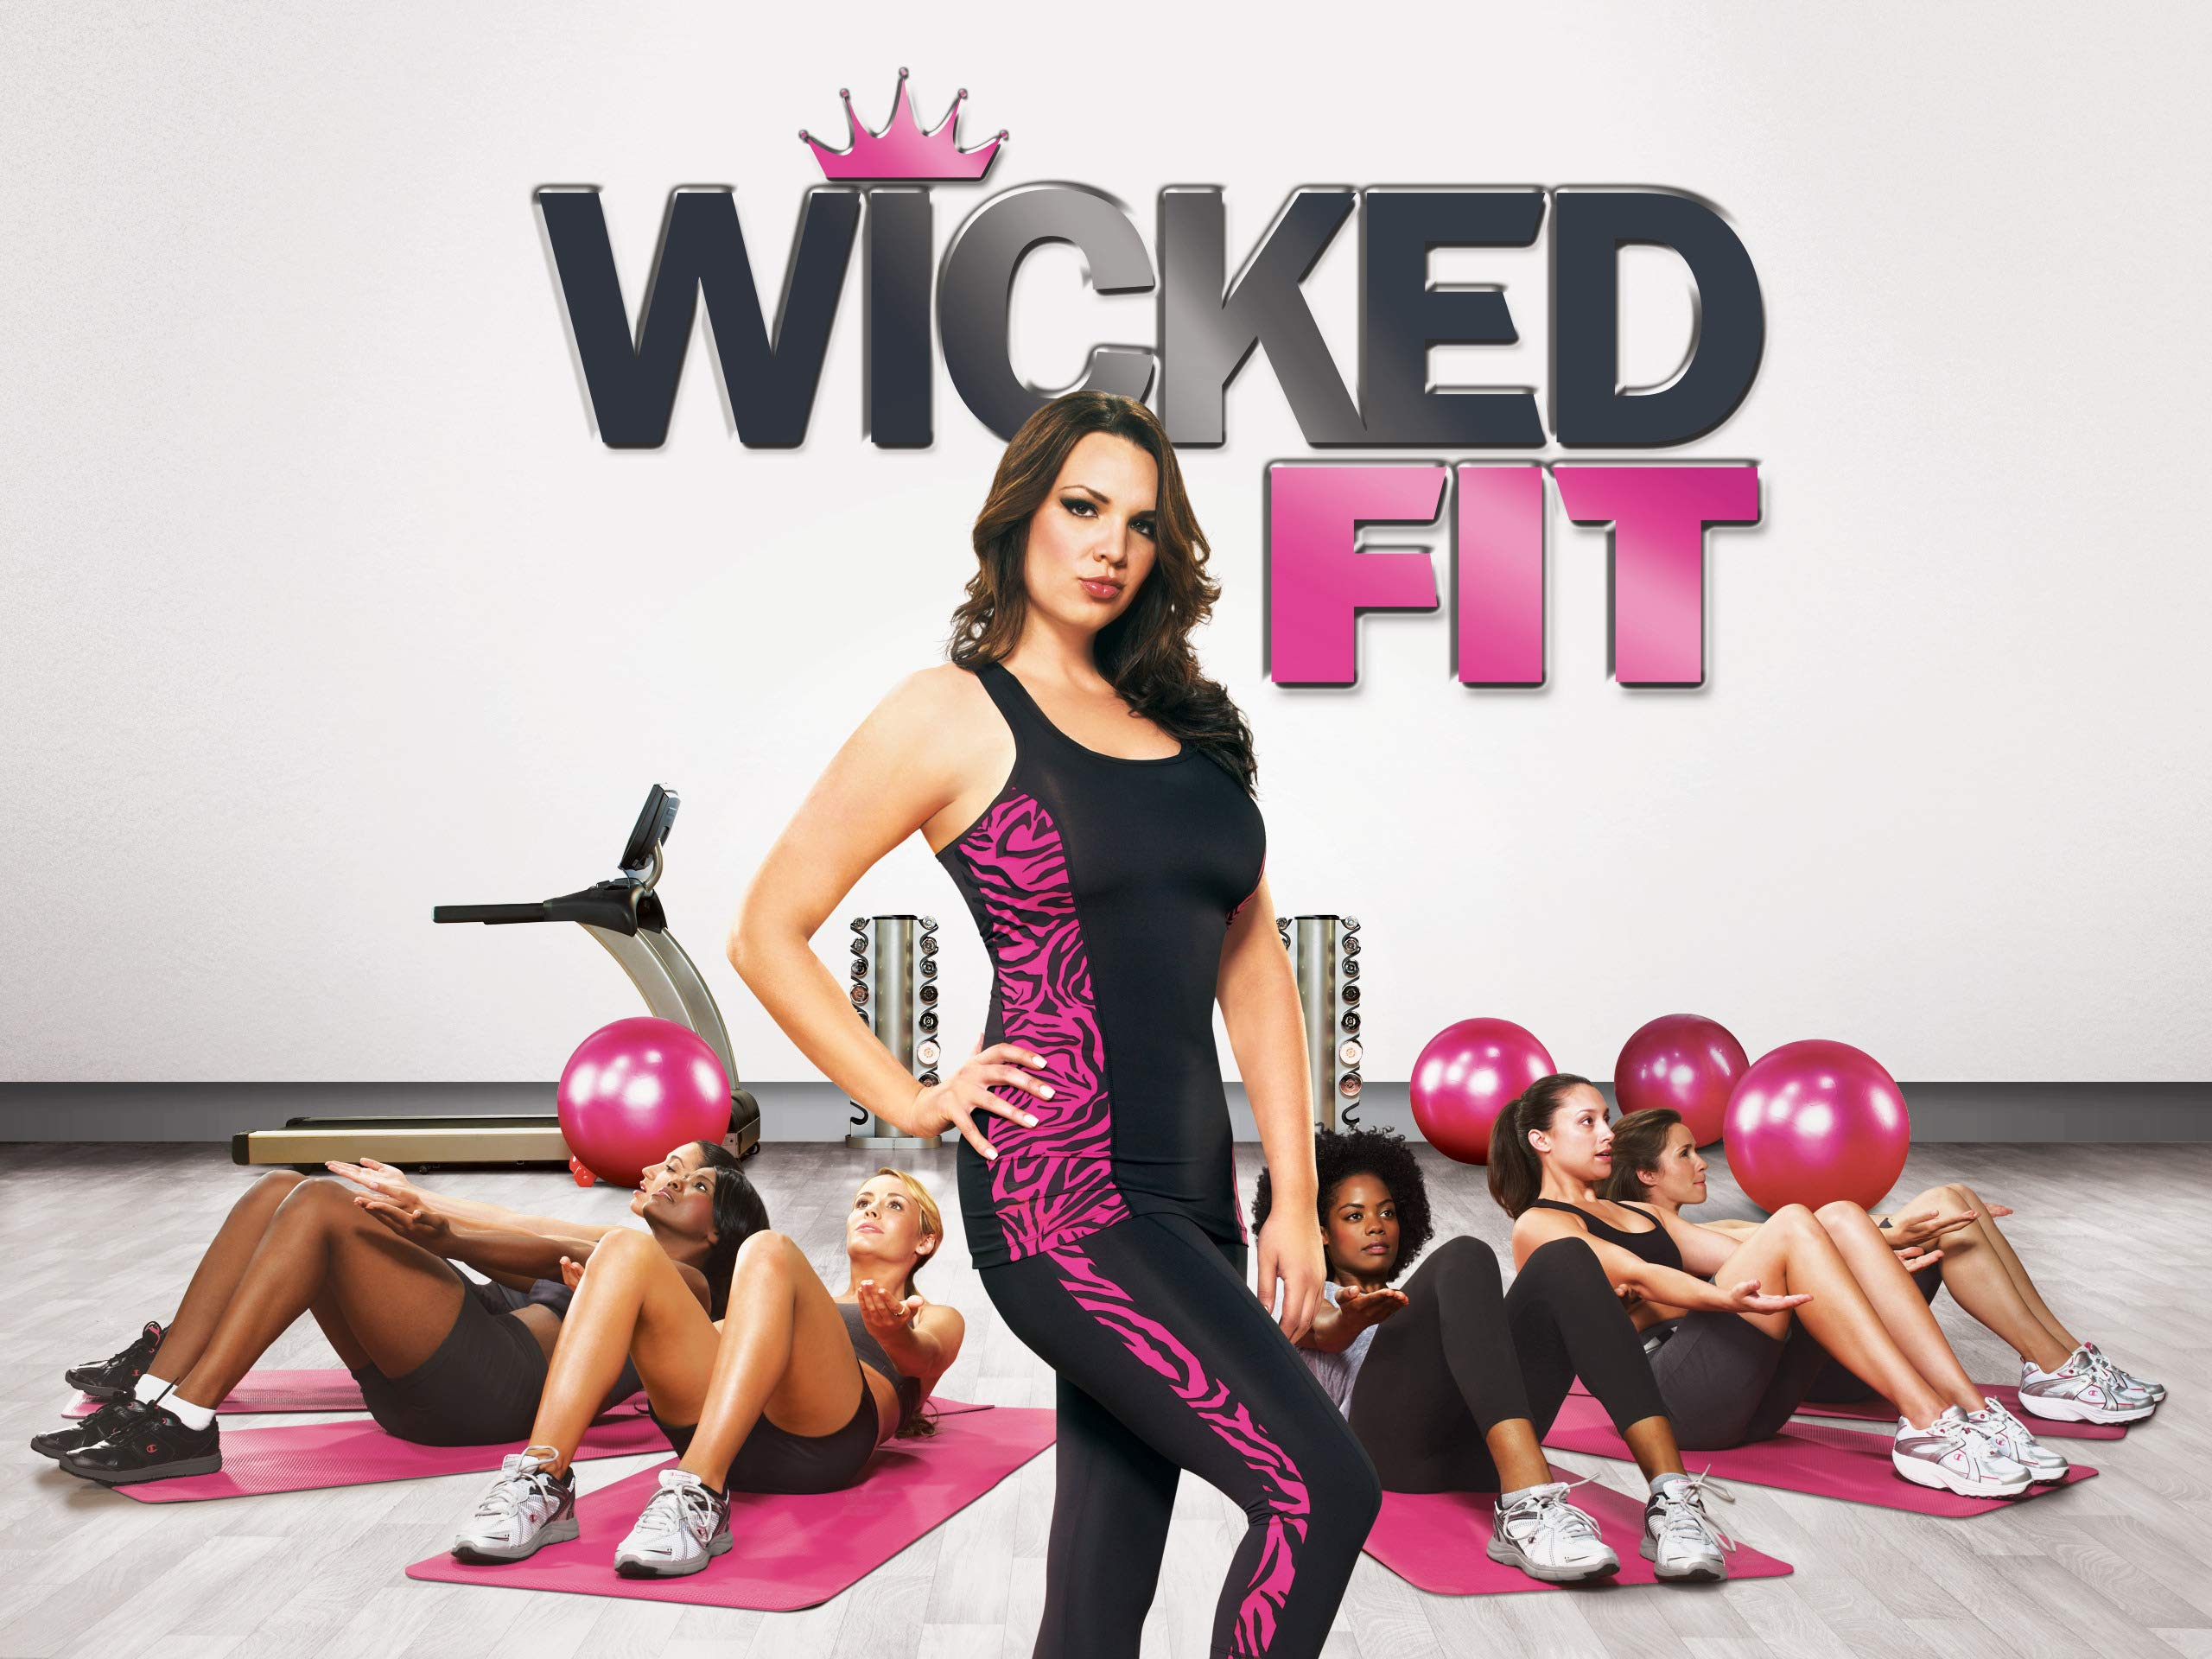 Wicked Fit (2011)